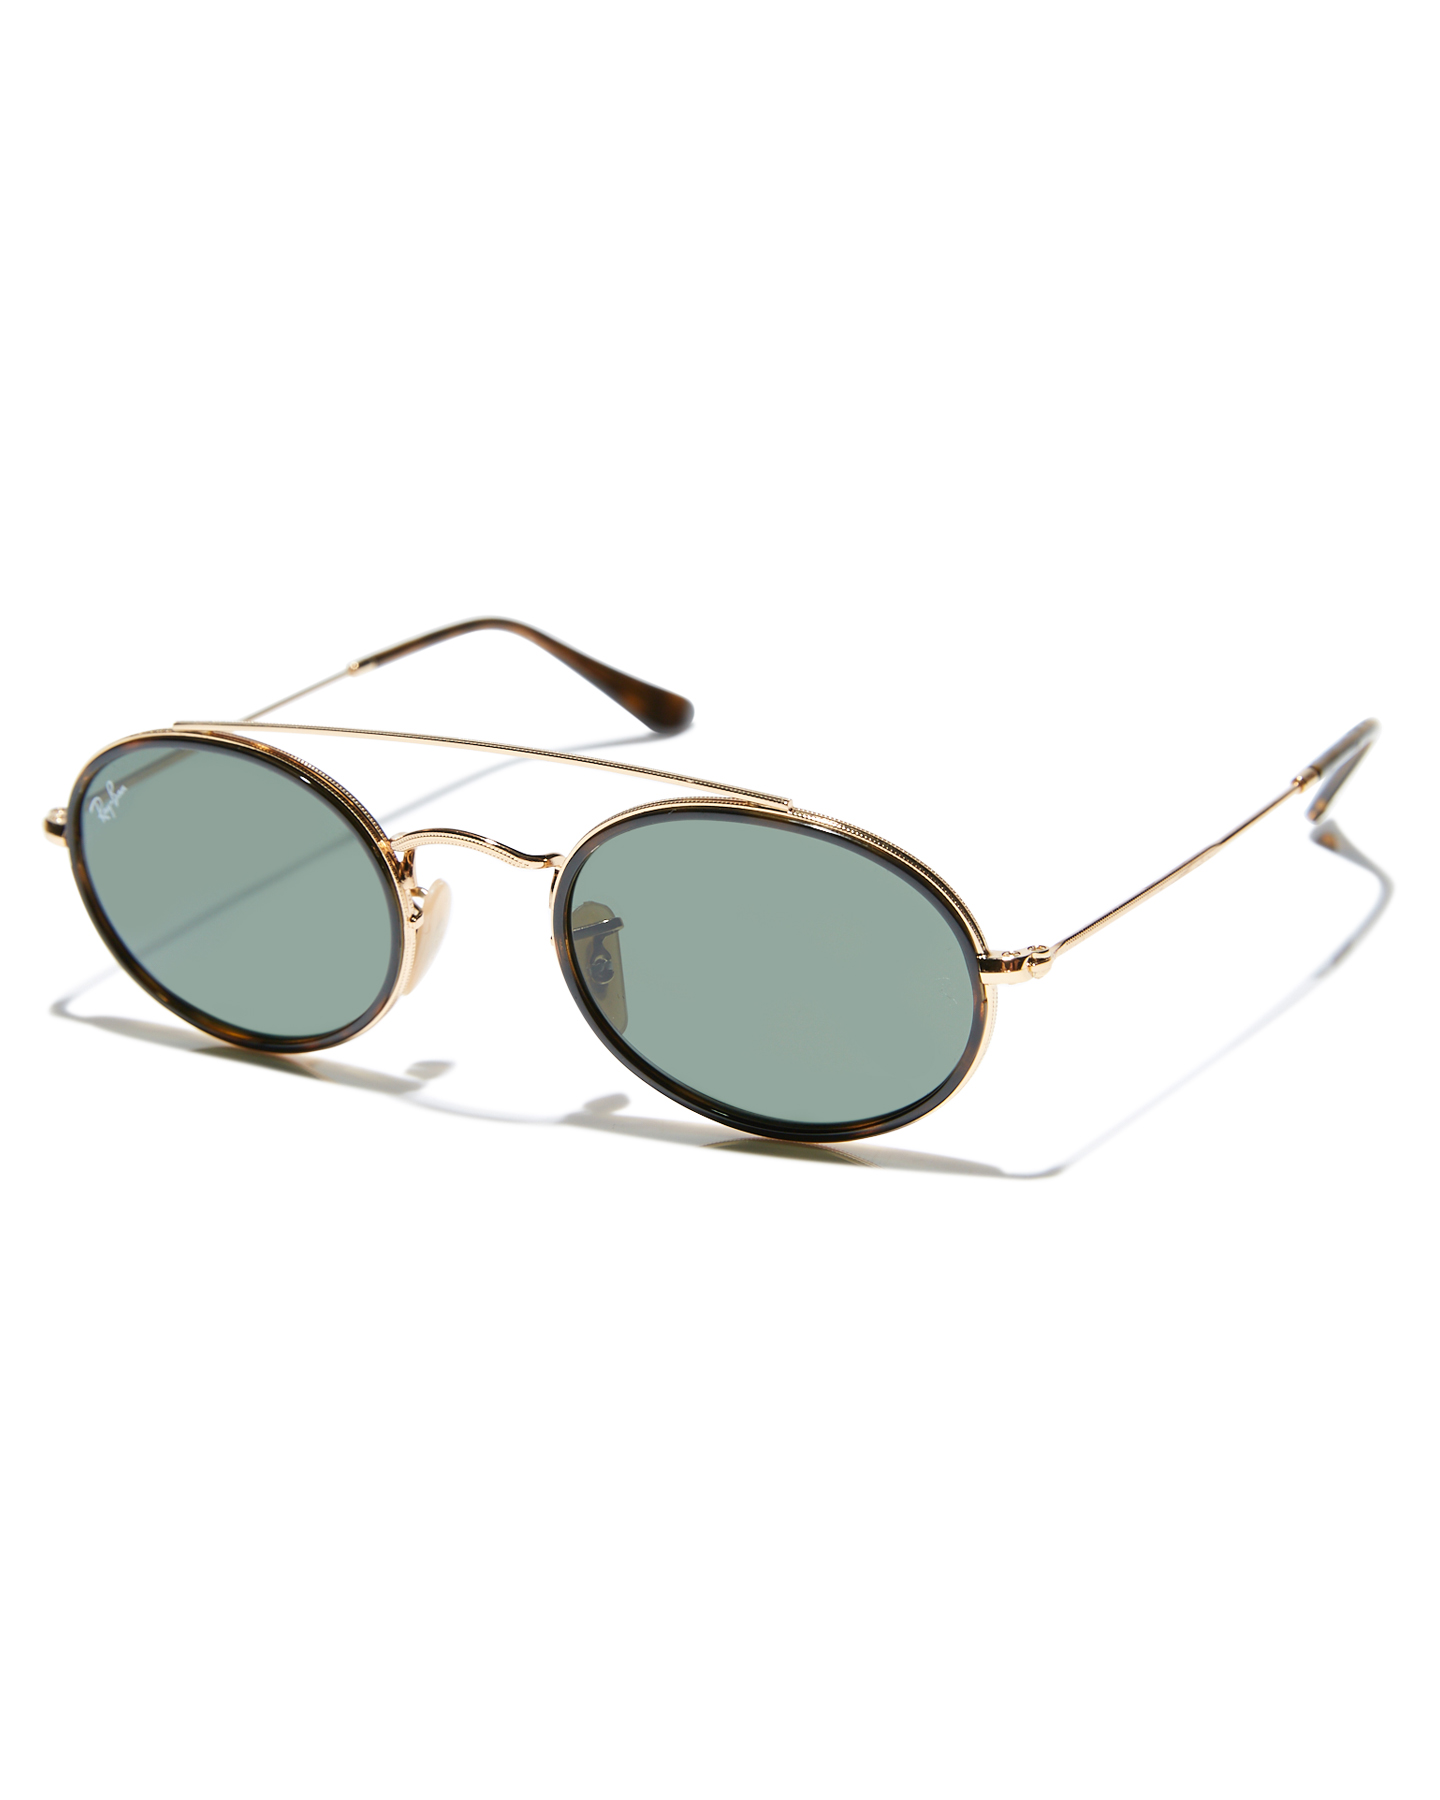 1ac8a909a7 Ray-Ban Oval Double Bridge Sunglasses Gold Green Mens sunglasses ...